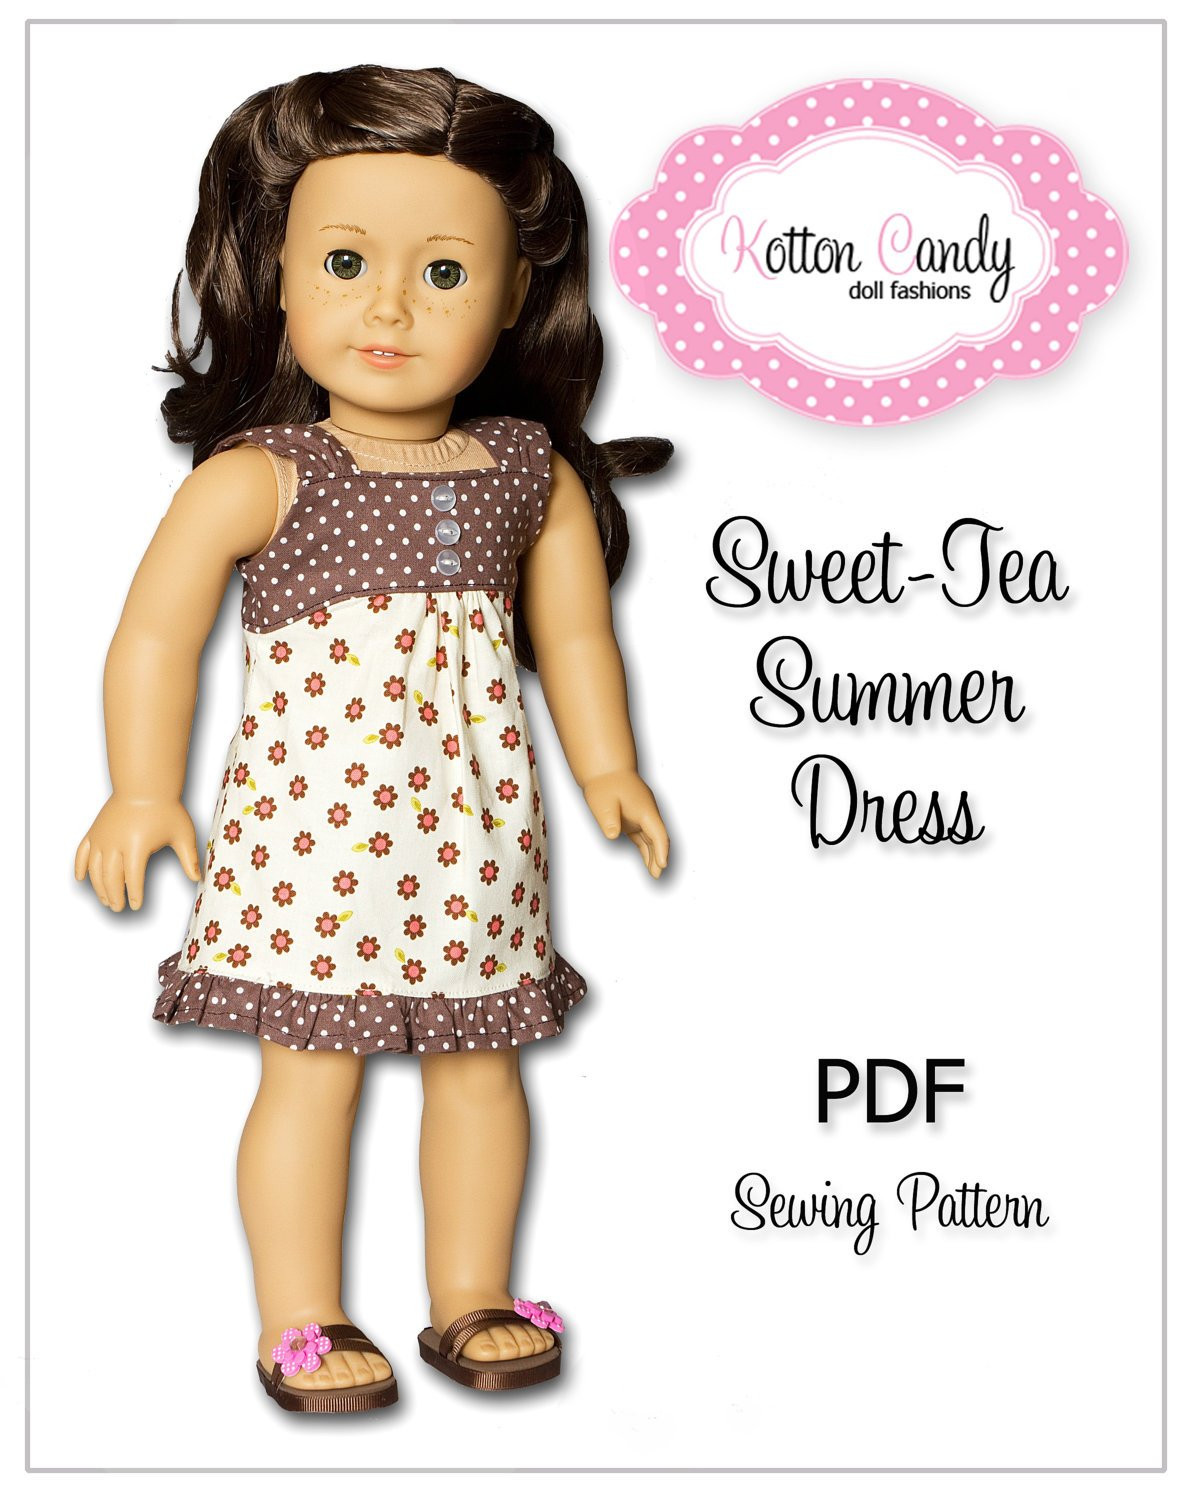 Luxury Pdf Sewing Pattern for 18 Inch American Girl Doll Clothes Free American Girl Doll Clothes Patterns Of Lovely 49 Models Free American Girl Doll Clothes Patterns